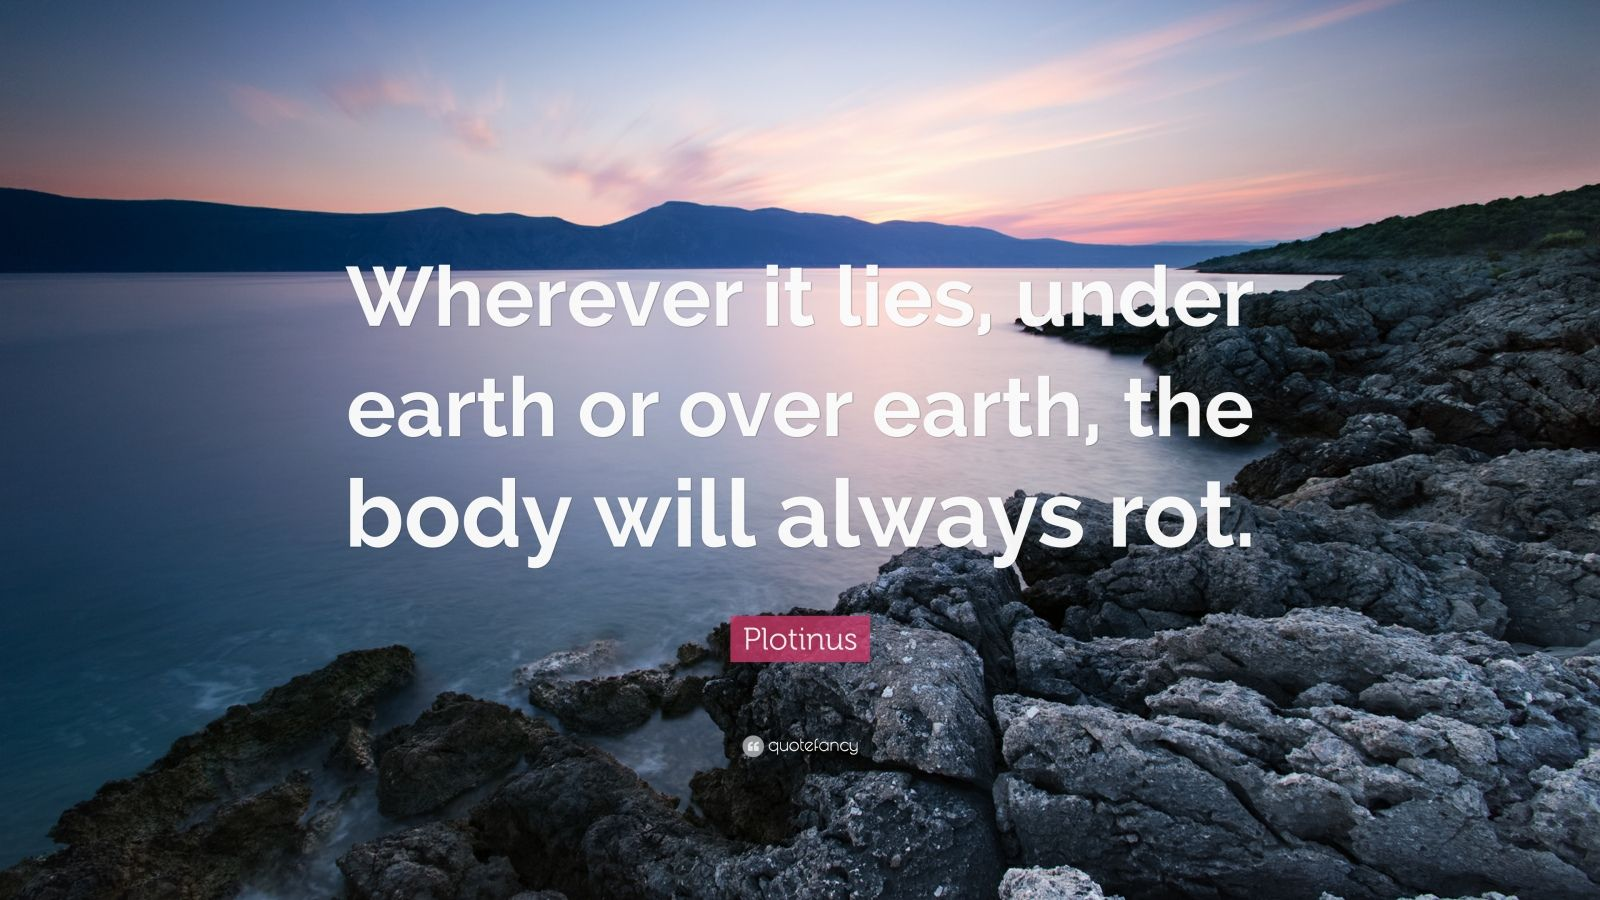 """Plotinus Quote: """"Wherever it lies, under earth or over earth, the body will always rot."""""""